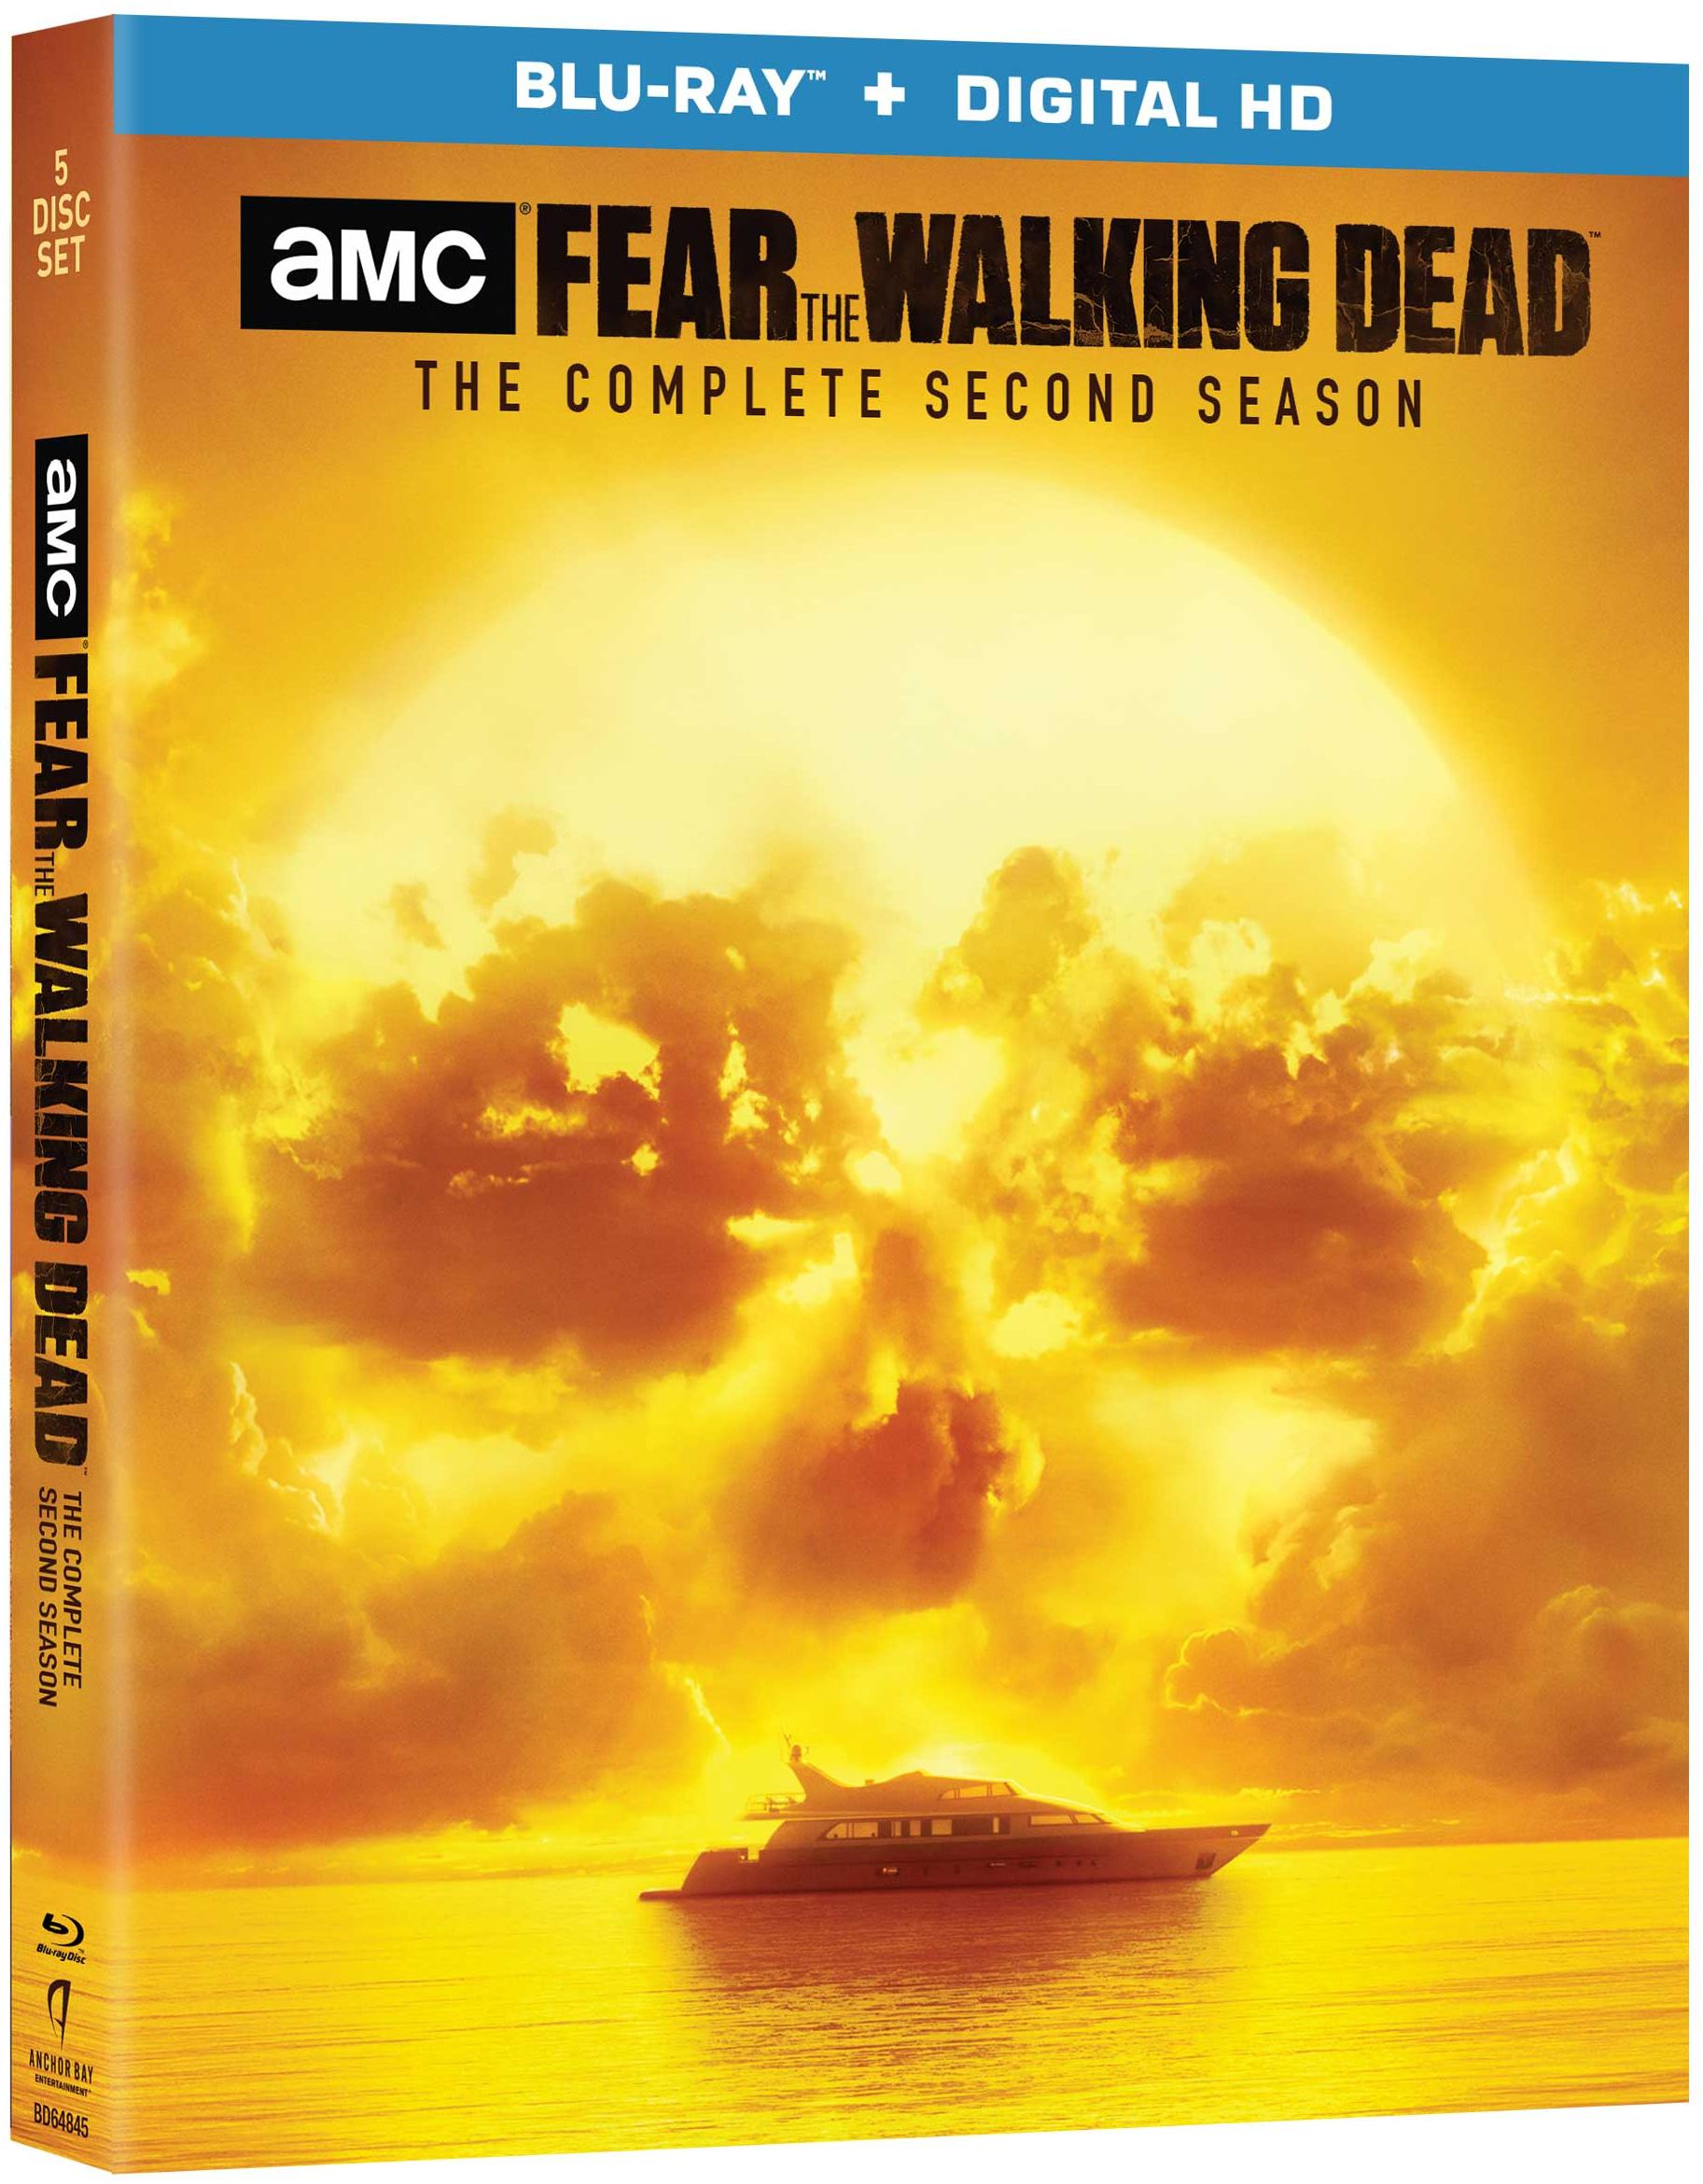 Fear The Walking Dead Season 2 Blu Ray Cover Side Screen